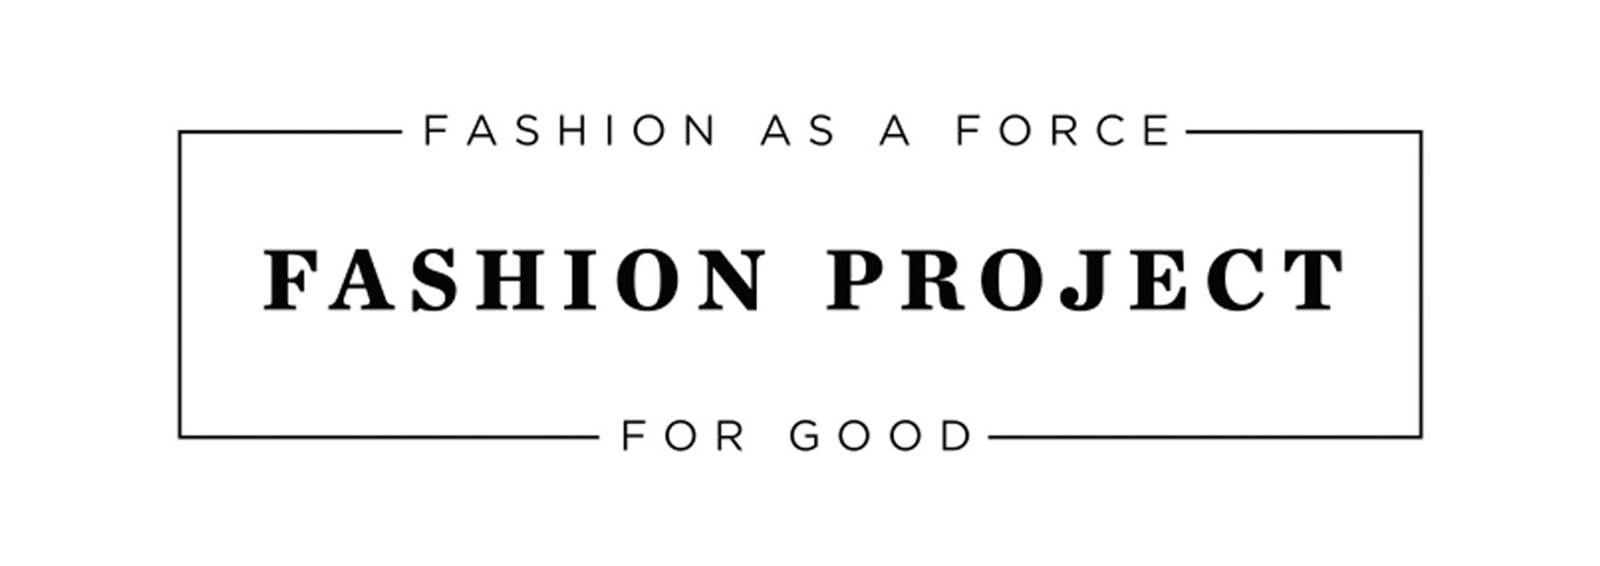 0_1_0000s_0048_Fashion-Project.png